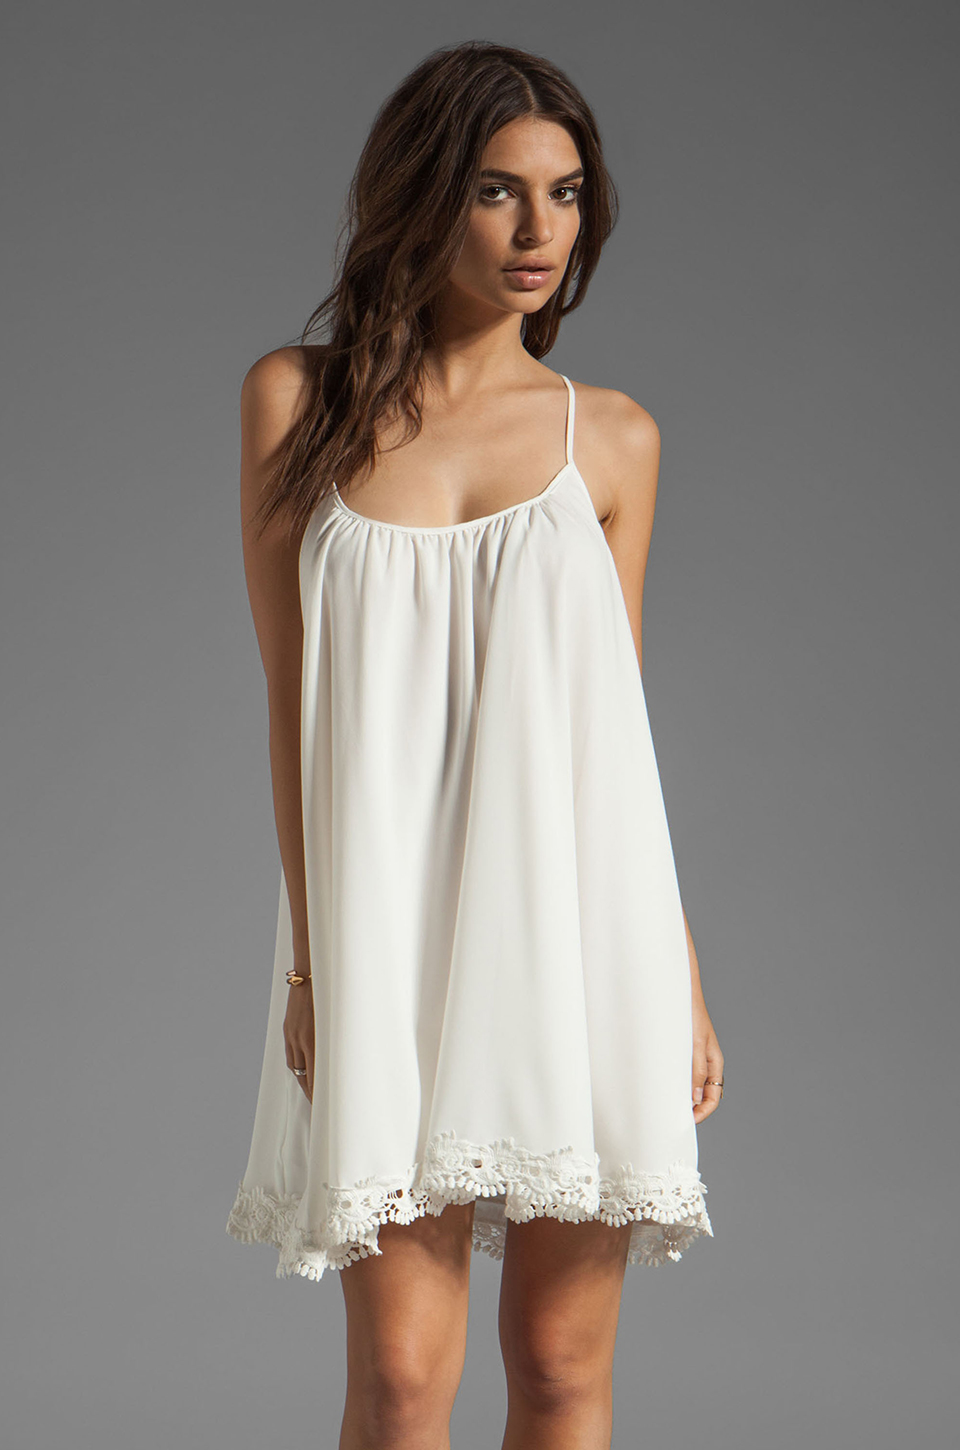 Lovers   Friends Sunshine Dress in White & Lace | REVOLVE